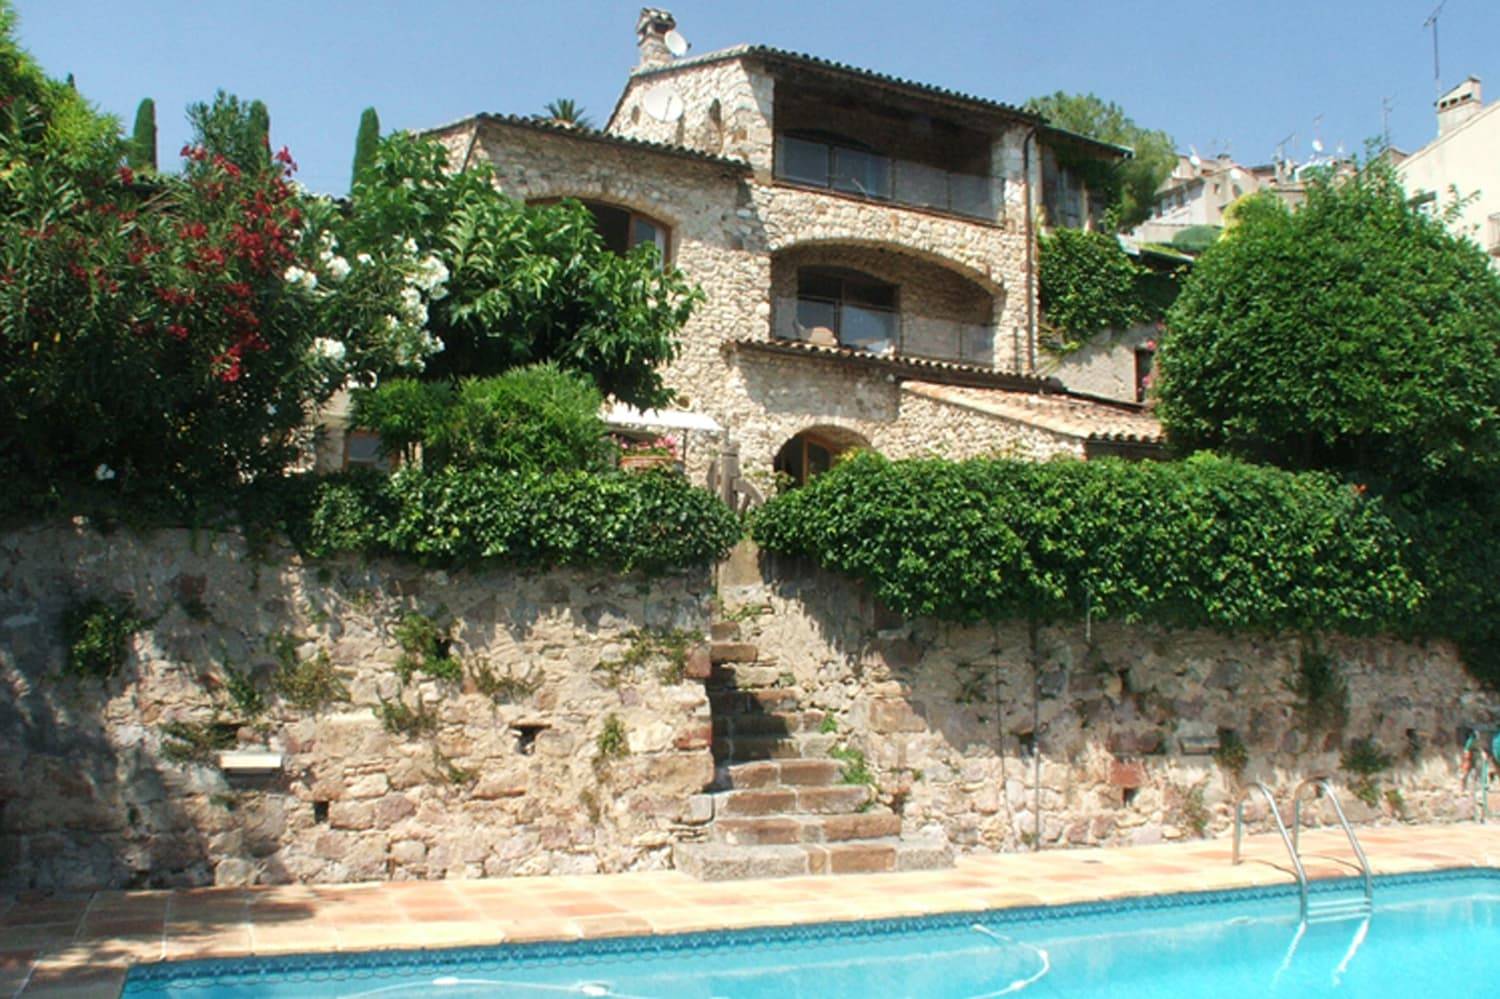 Vacation home near Biot, Provence-Alpes-Côte d'Azur